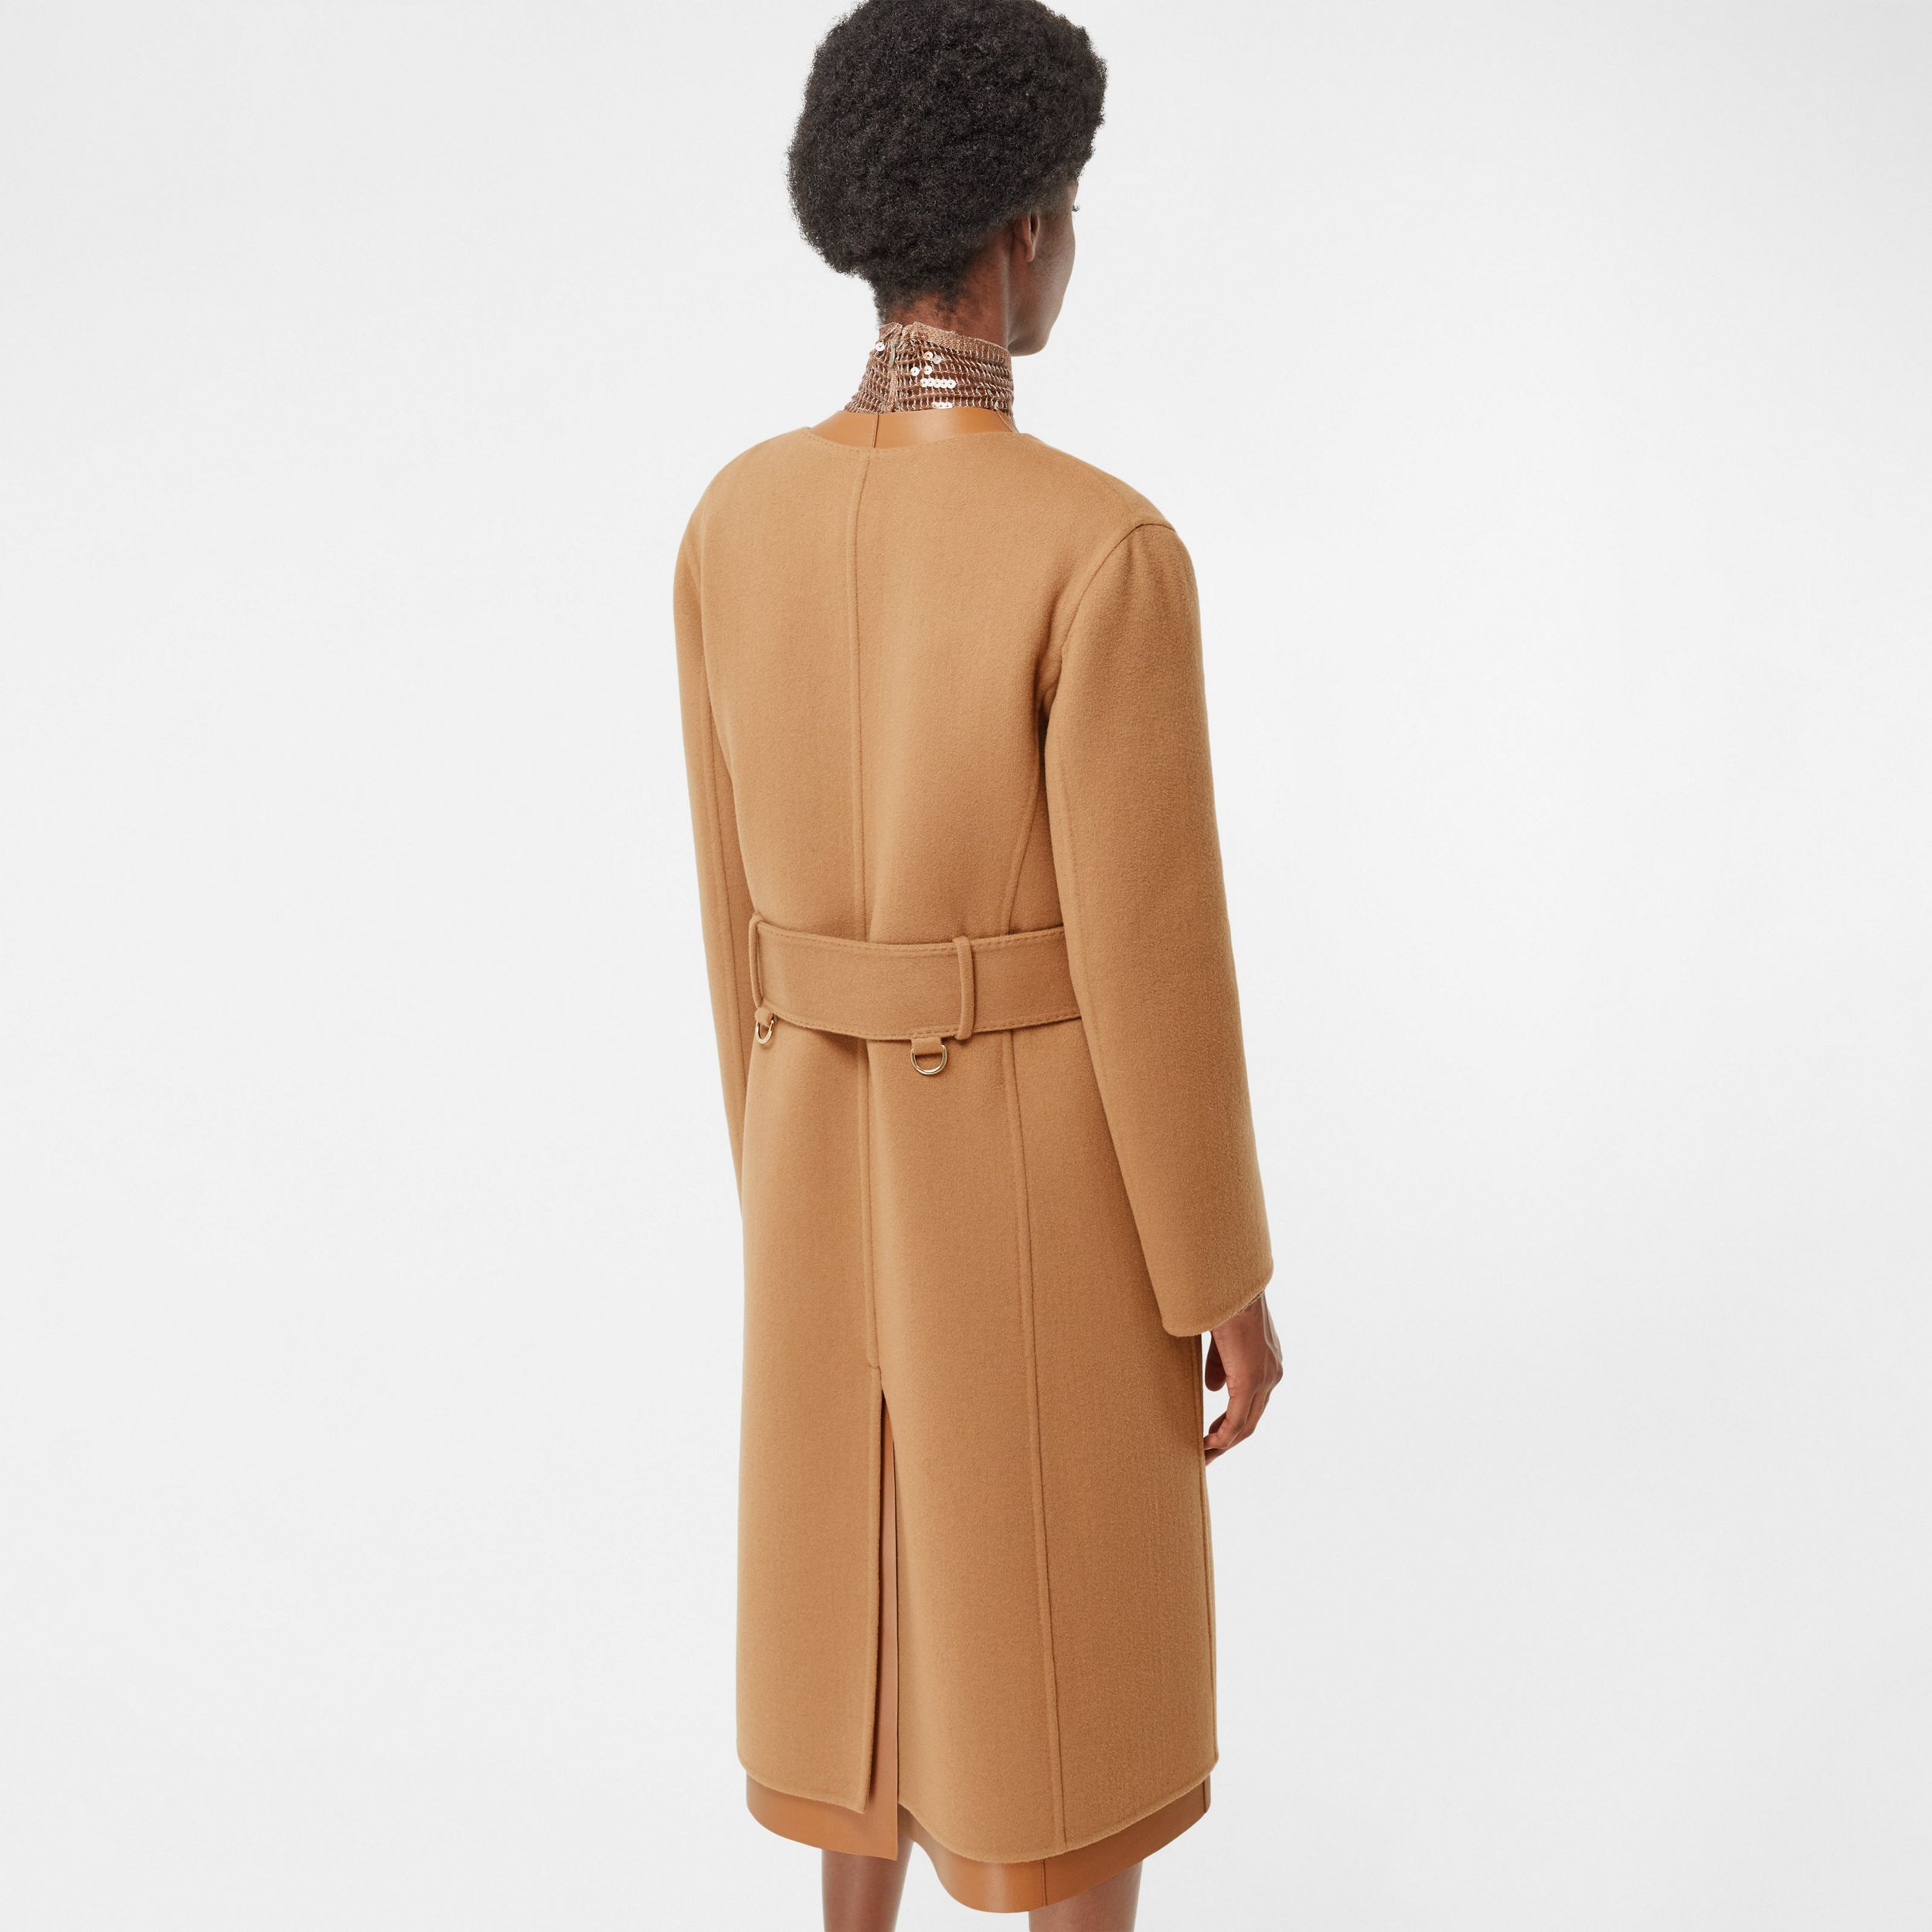 Double-faced Cashmere and Lambskin Wrap Coat in Camel - Women | Burberry - 3